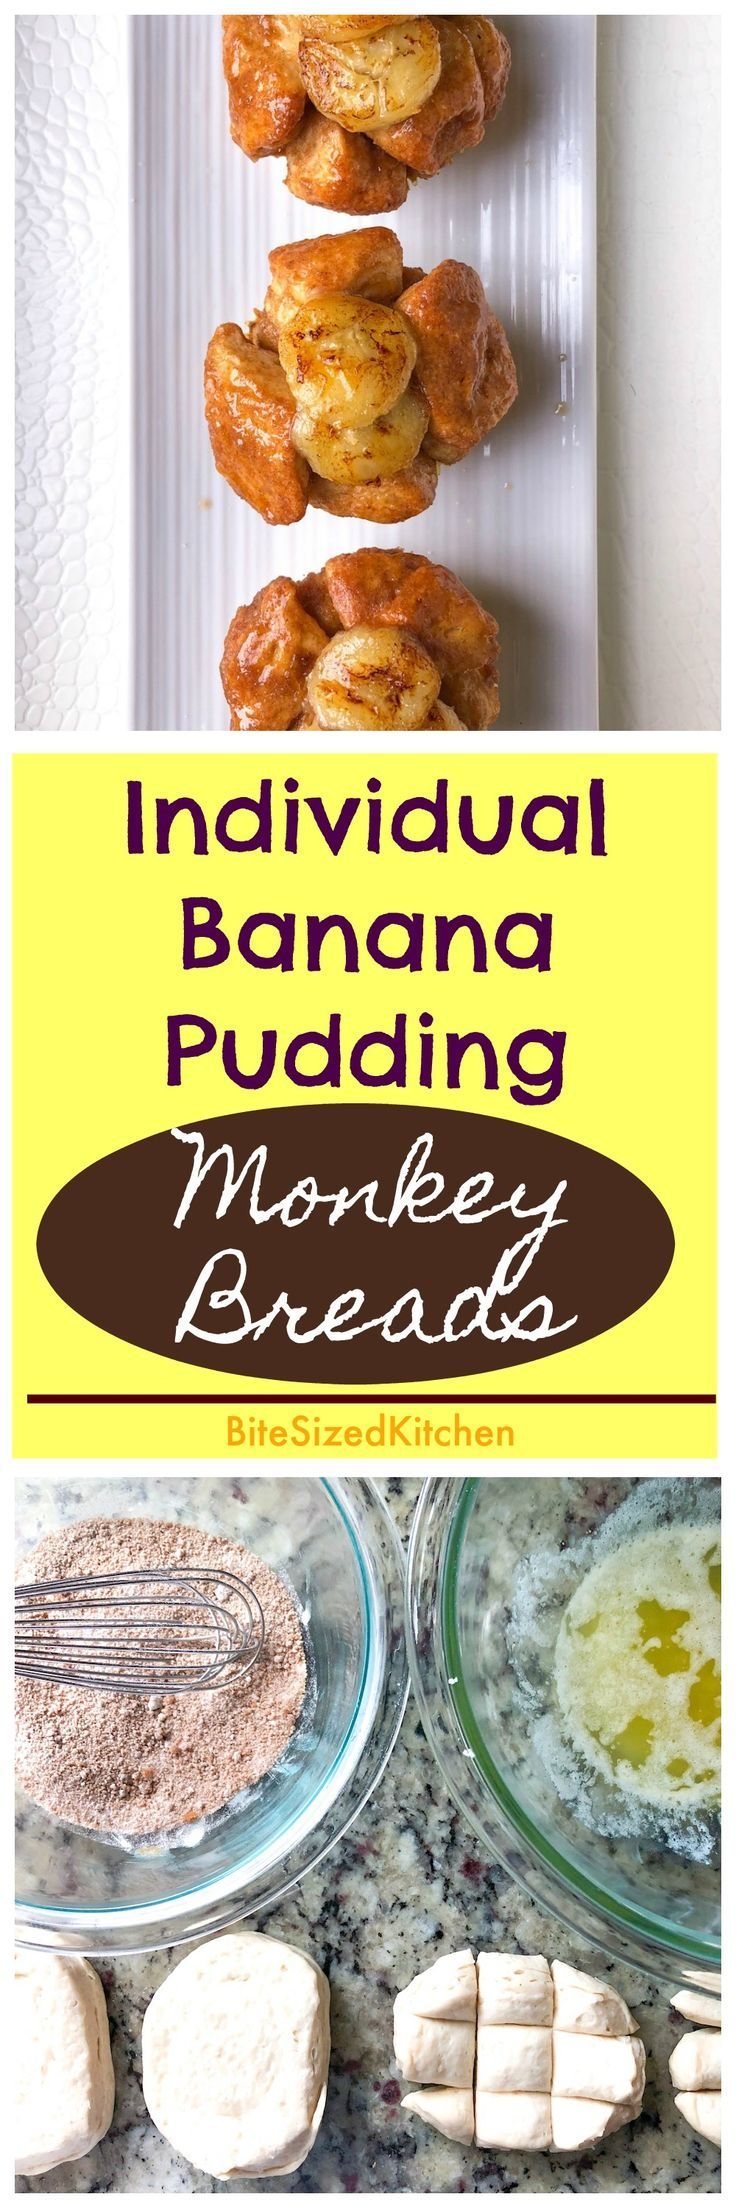 EASY Monkey Bread Muffins with Banana Pudding | Bite Sized Kitchen